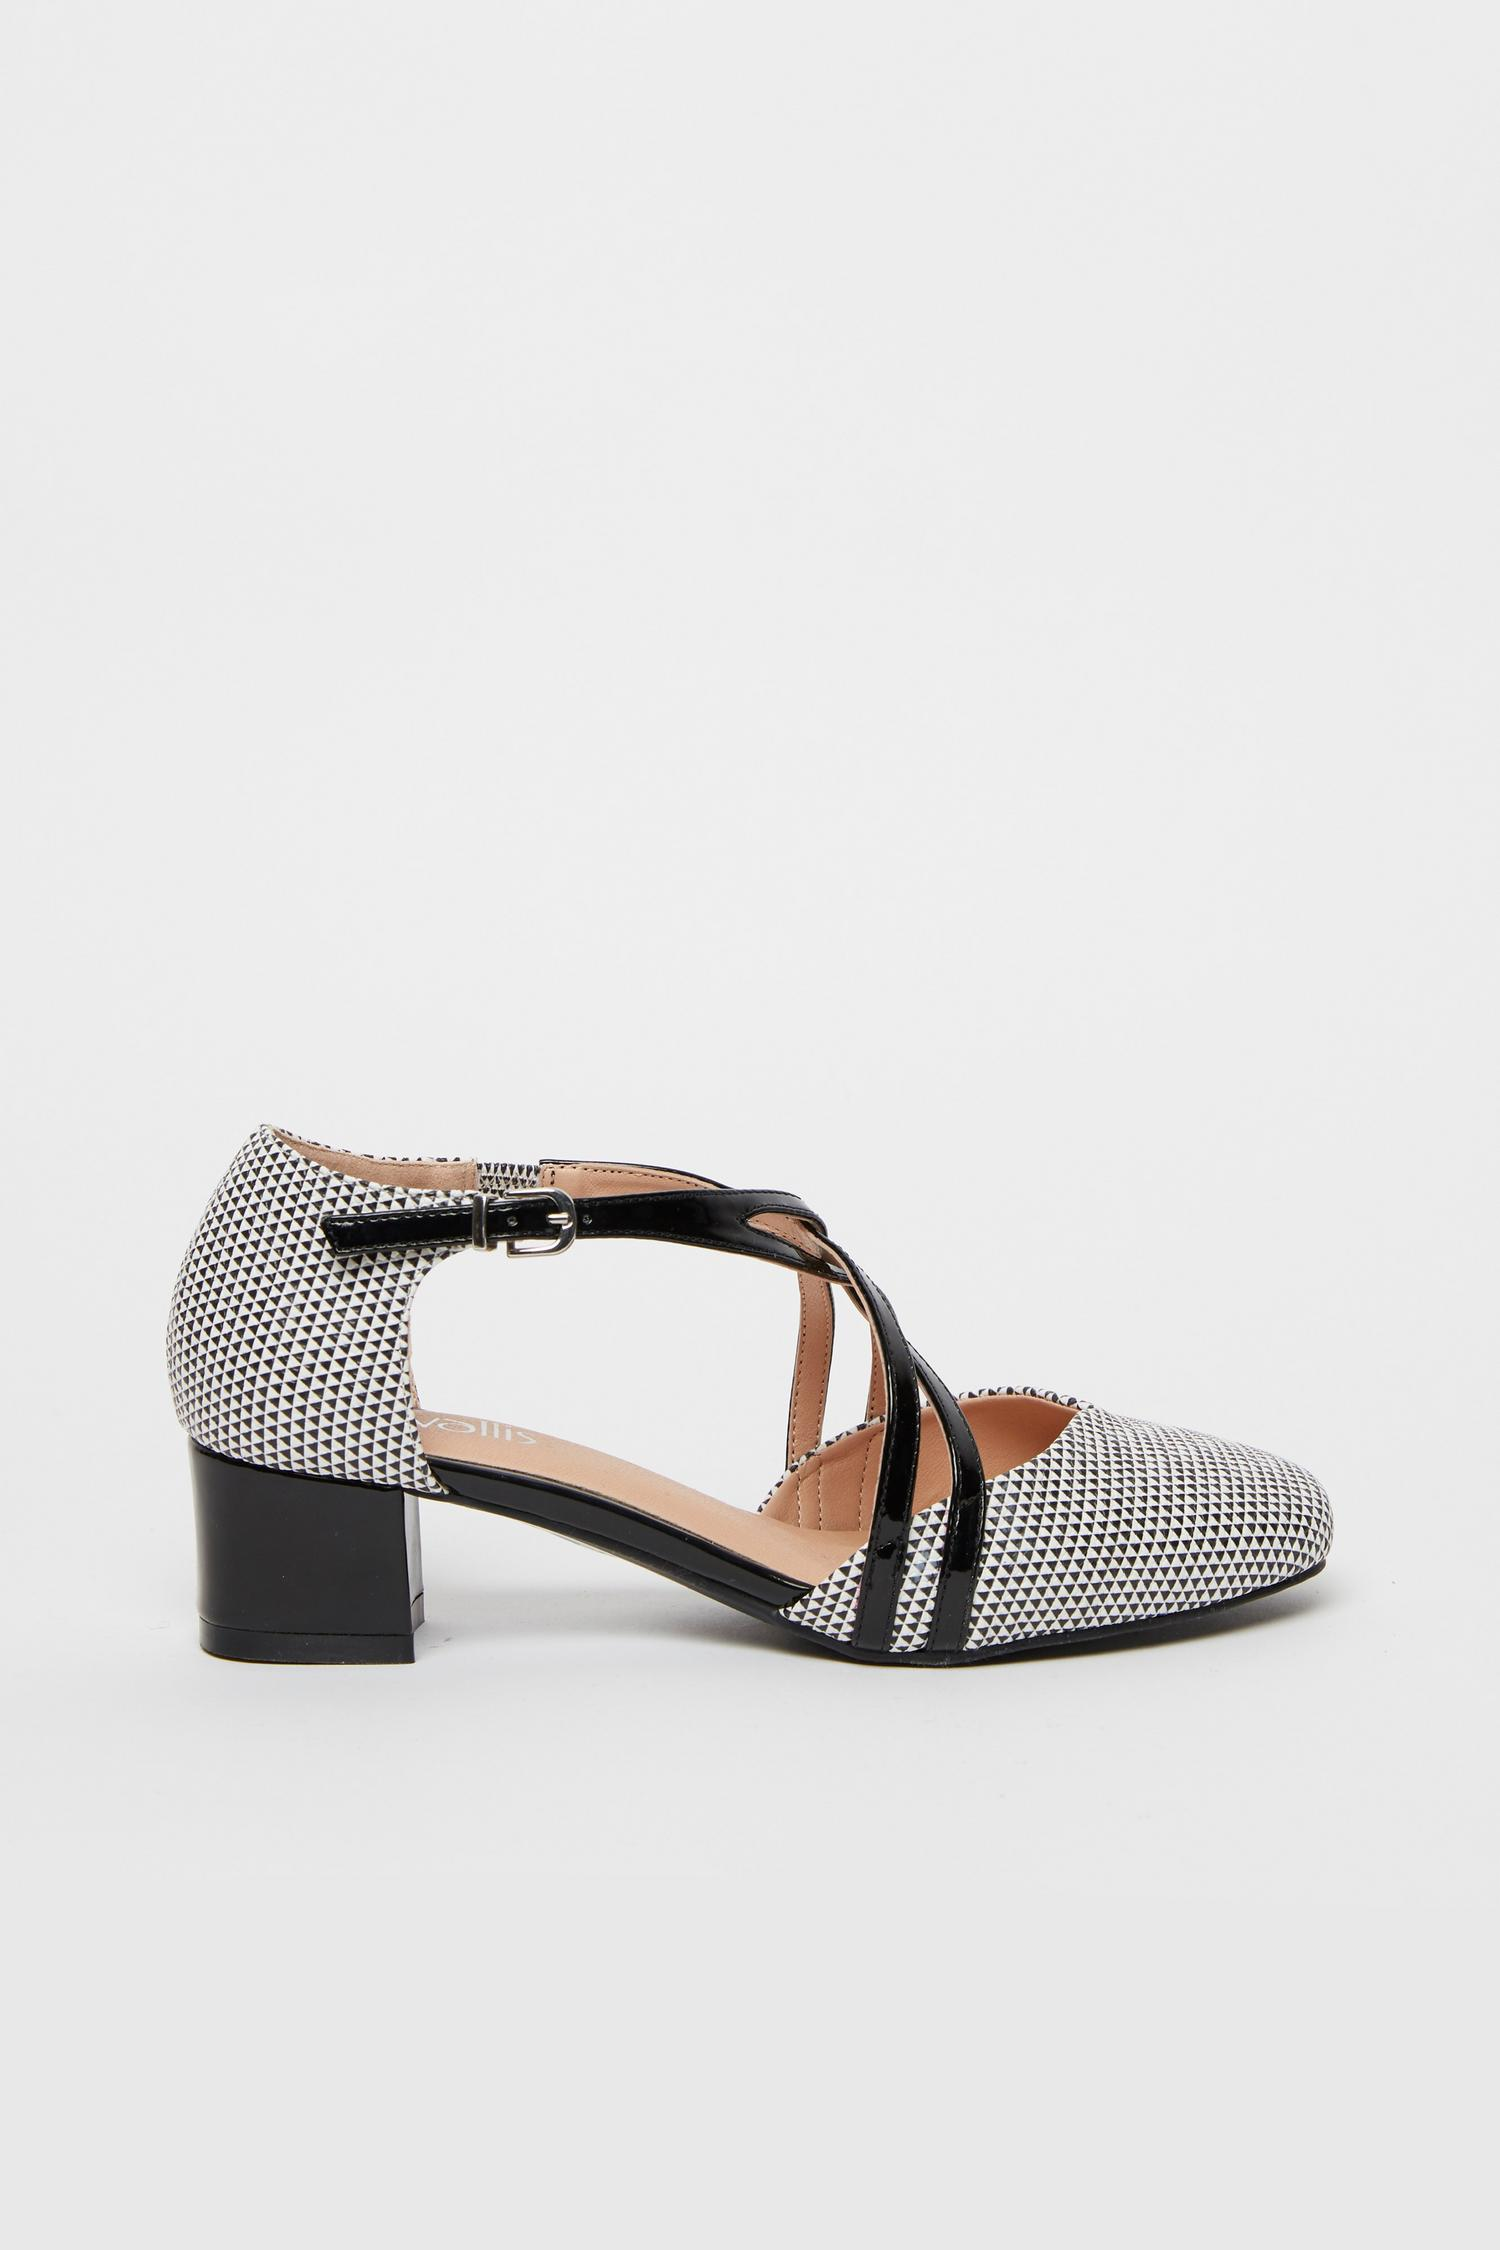 585 Monochrome Cross Strap Block Heel image number 4